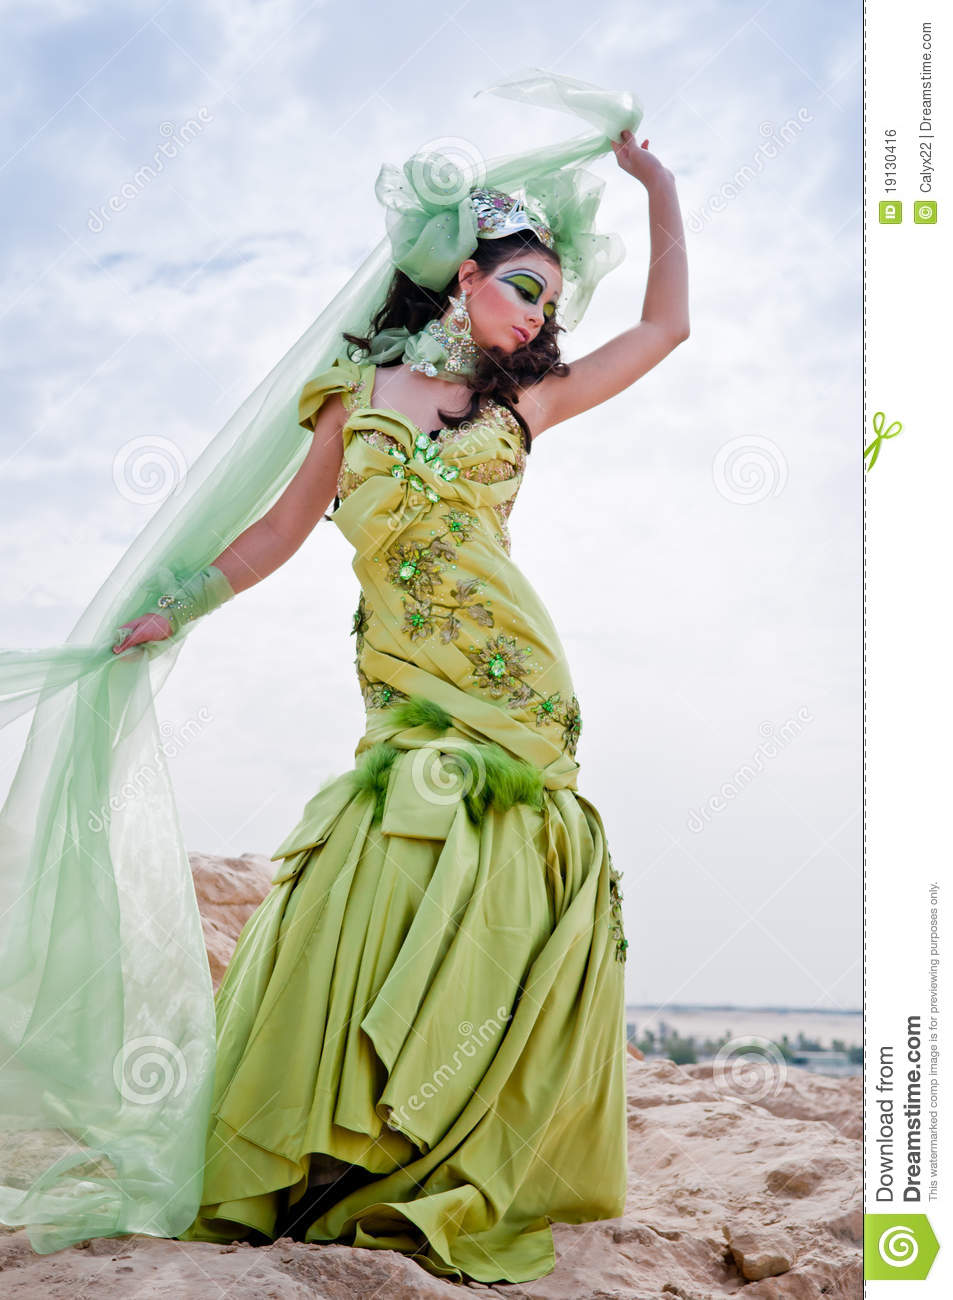 Fantasy Goddess Royalty Free Stock Image